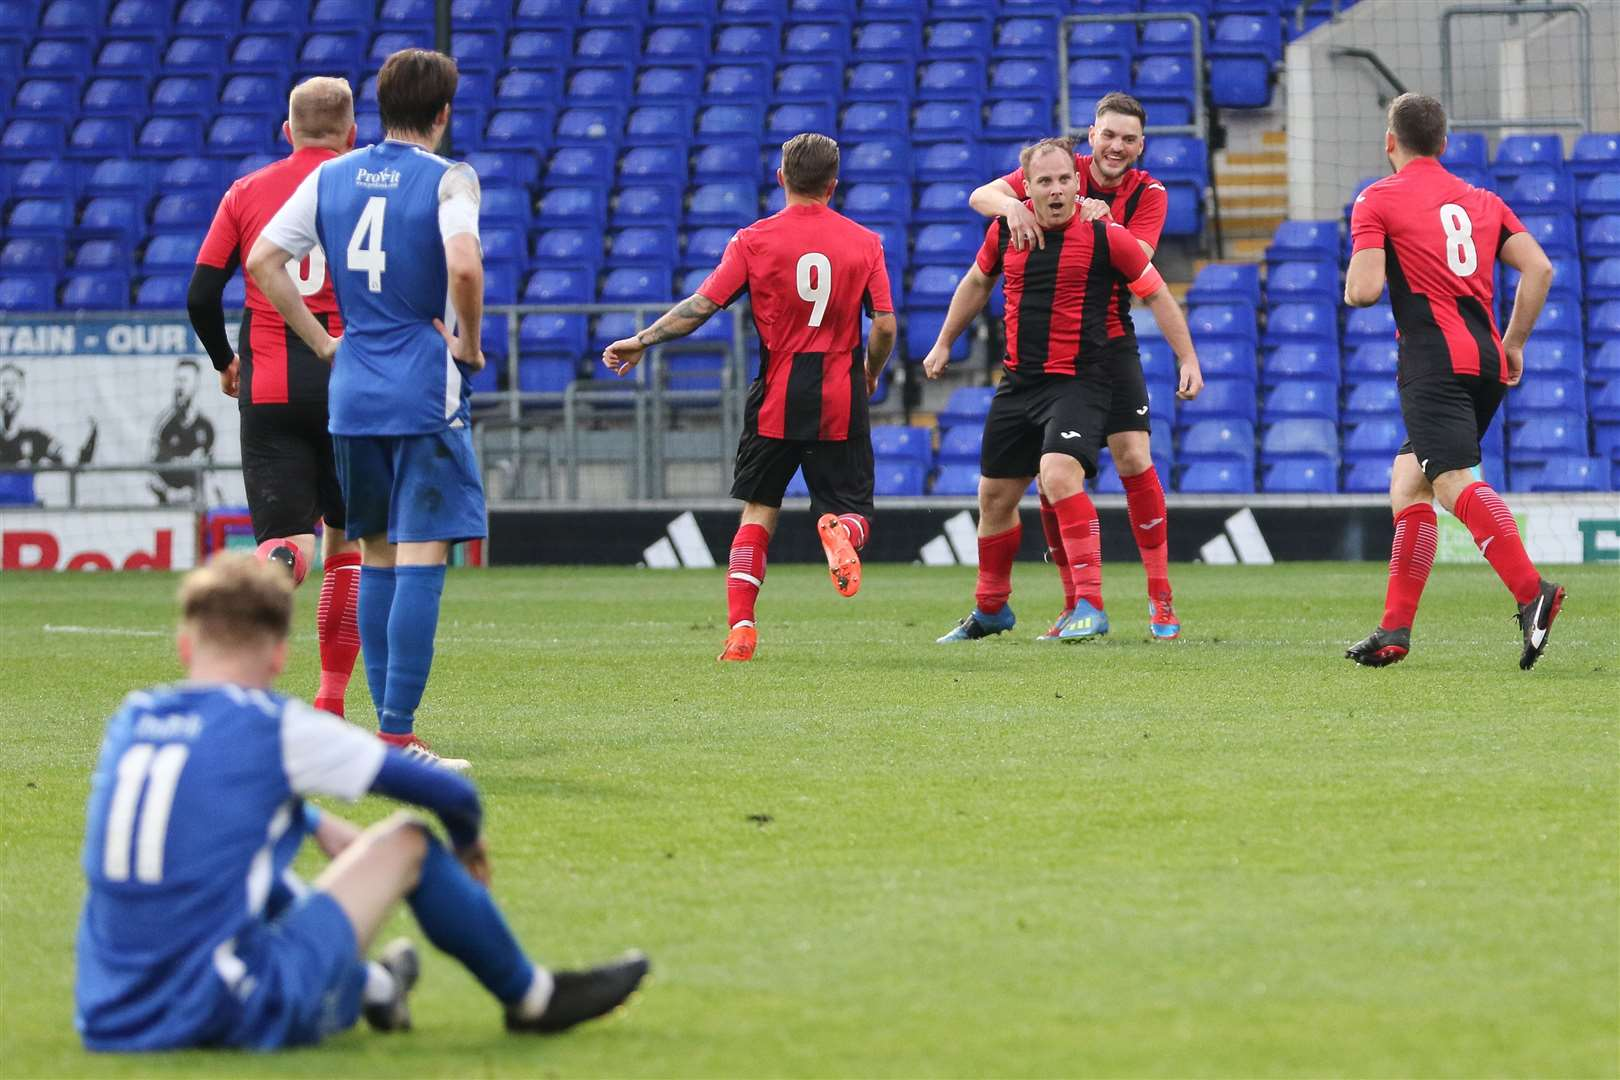 Achilles' Lee Grimwood celebrates making it 2-0 Pictures: Gary Donnison